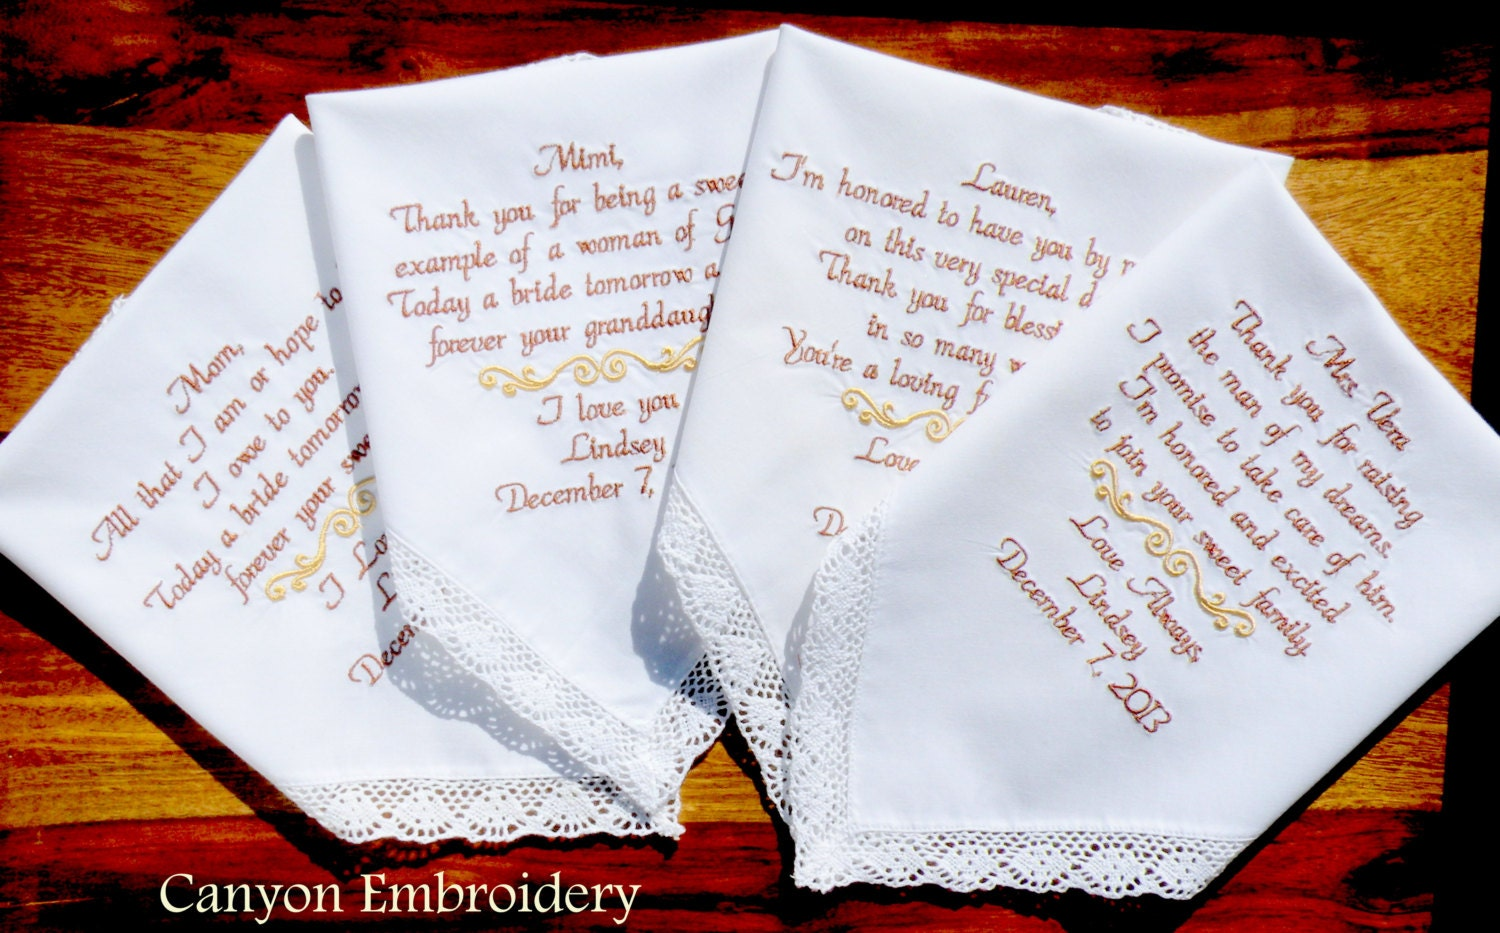 Wedding Handkerchiefs For The Family: Embroidered Wedding Handkerchiefs Wedding Gift Set Of Four